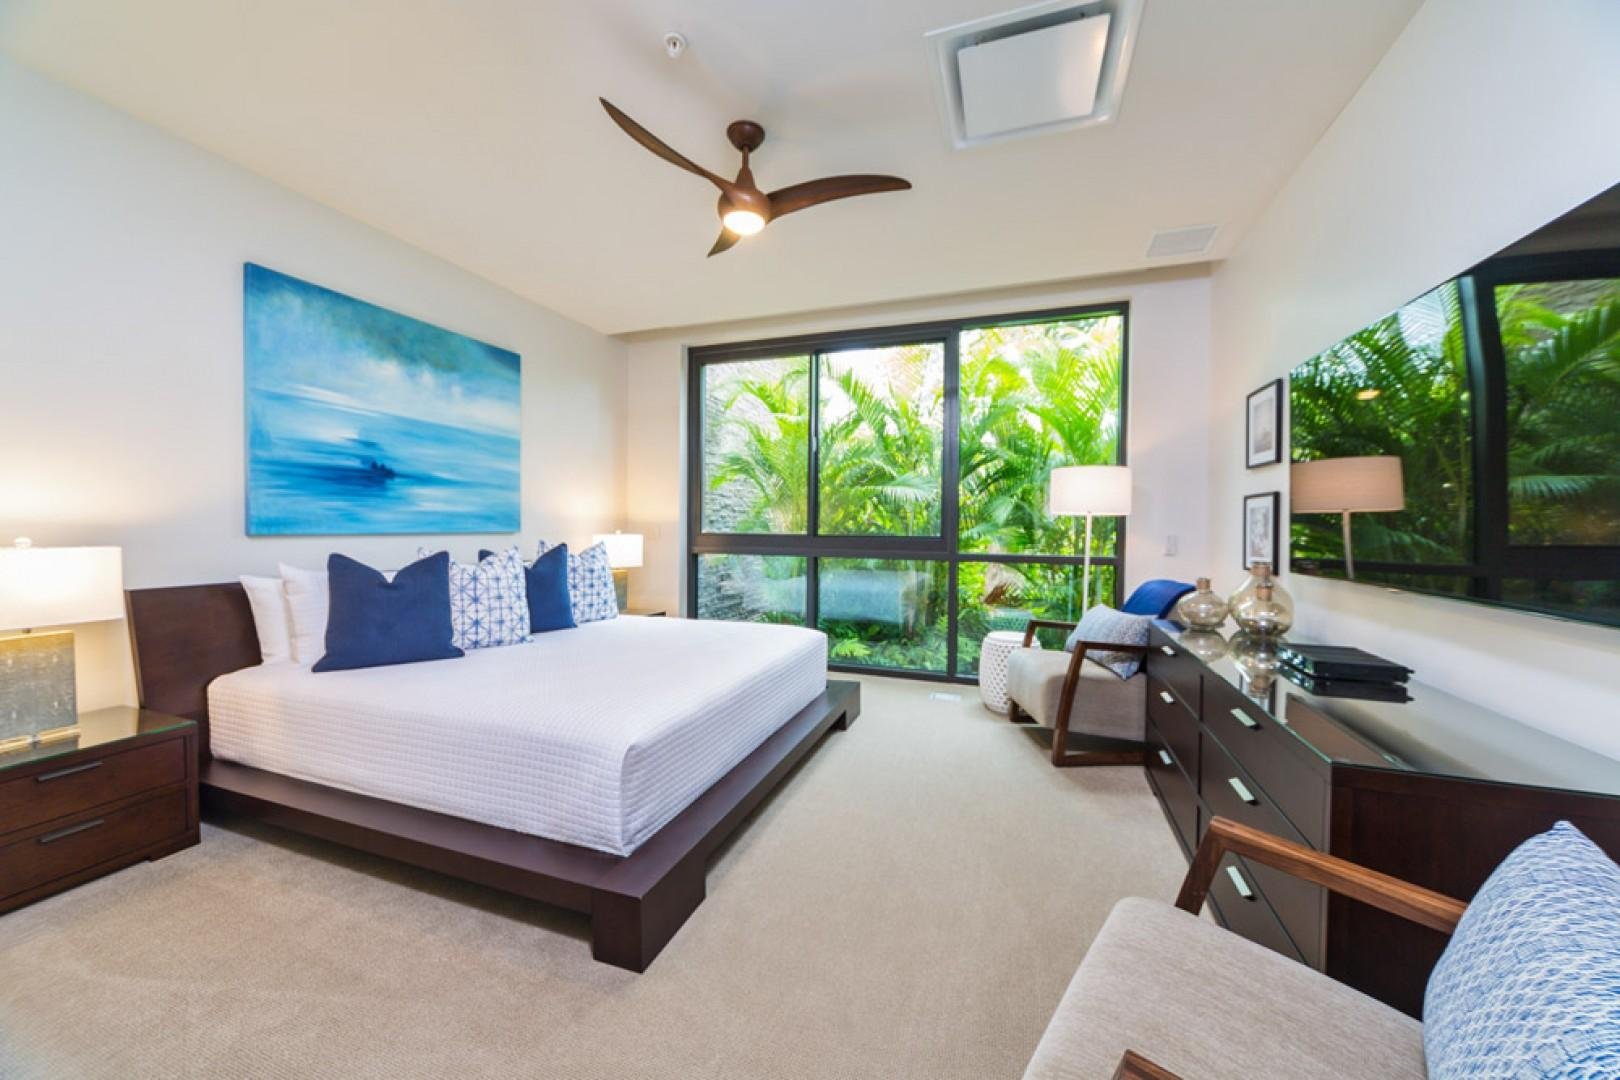 SeaGlass Villa 810 at Andaz Maui Wailea Resort - Second King Bedroom Suite with Tropical Floral Garden Views, Large Flat Panel HDTV with Netflix and En-Suite Private Bath